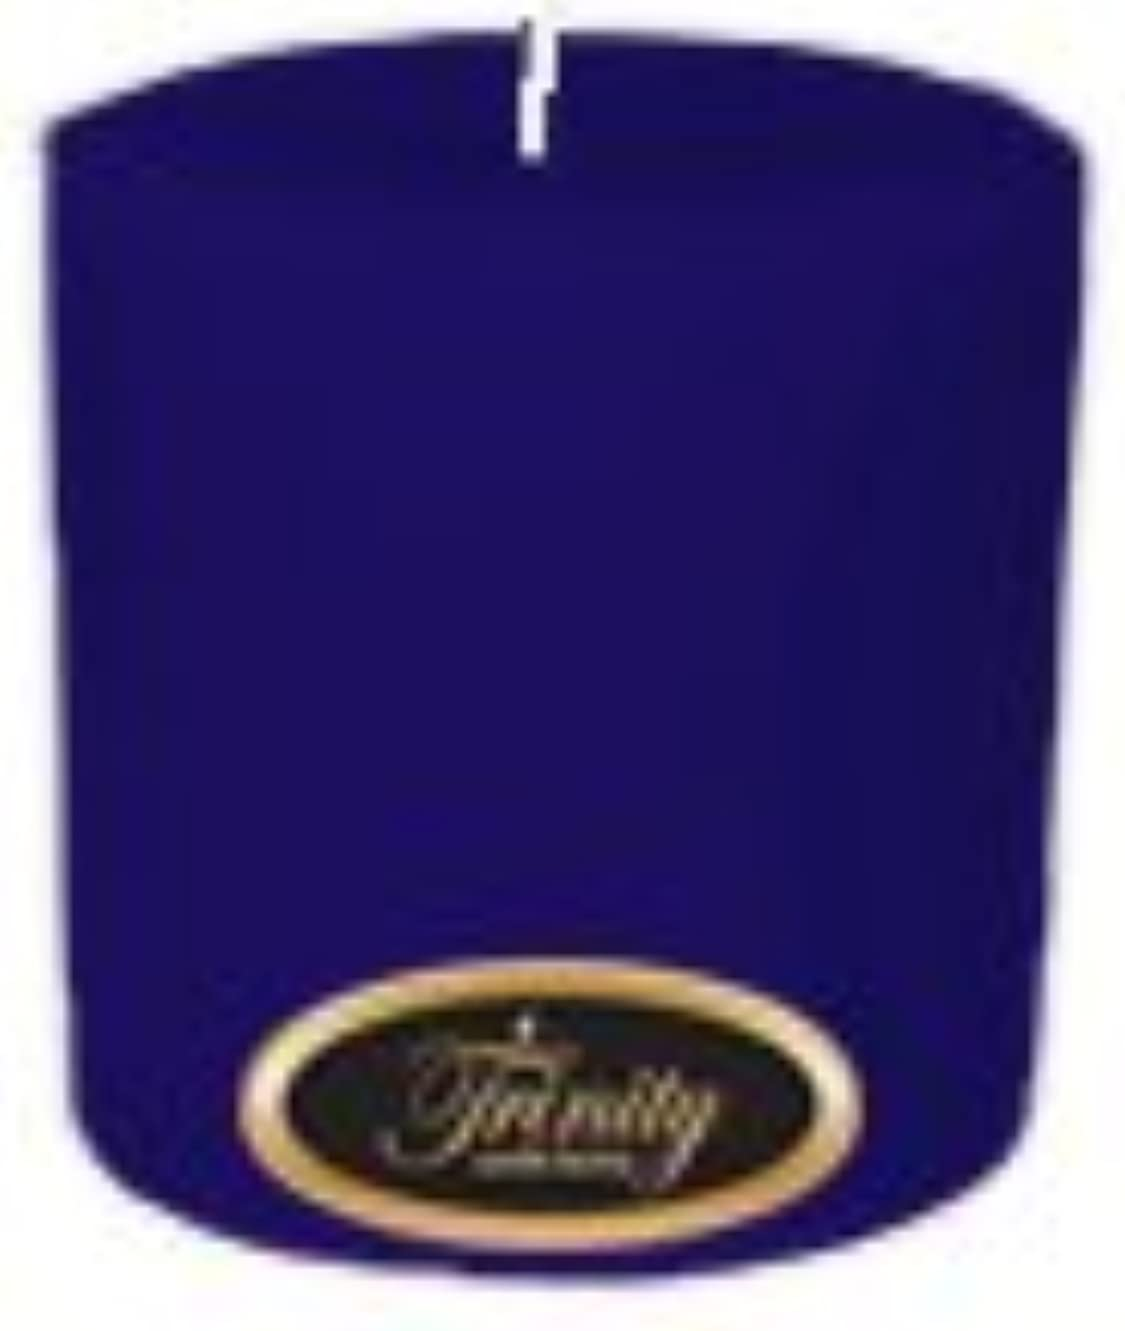 明らかに目覚める盲目Trinity Candle工場 – Blueberry Fields – Pillar Candle – 4 x 4